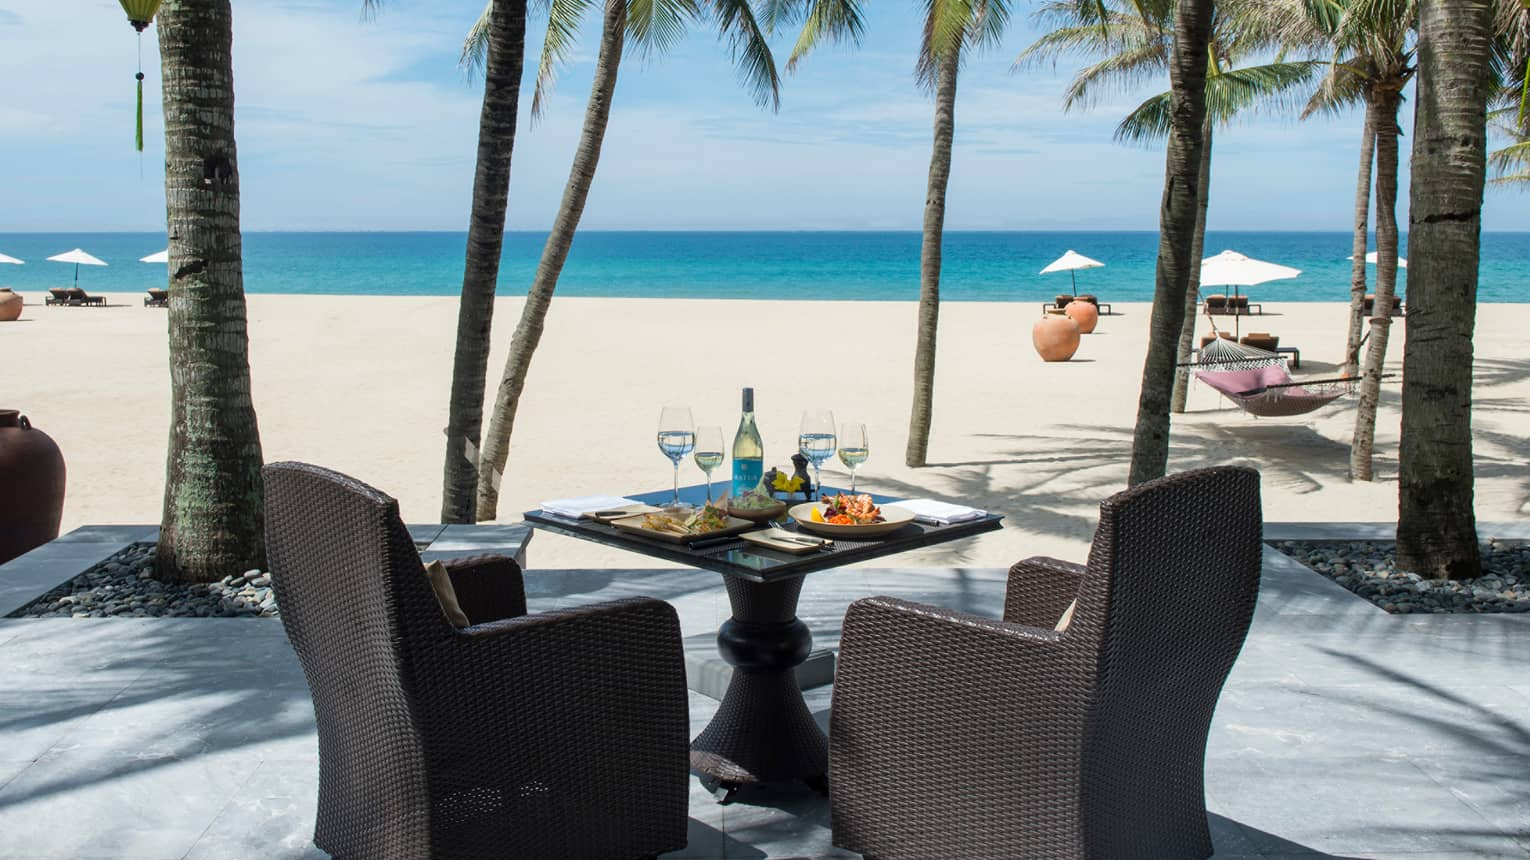 Dining table with meals, white wine, large black wicker chairs facing beach, ocean